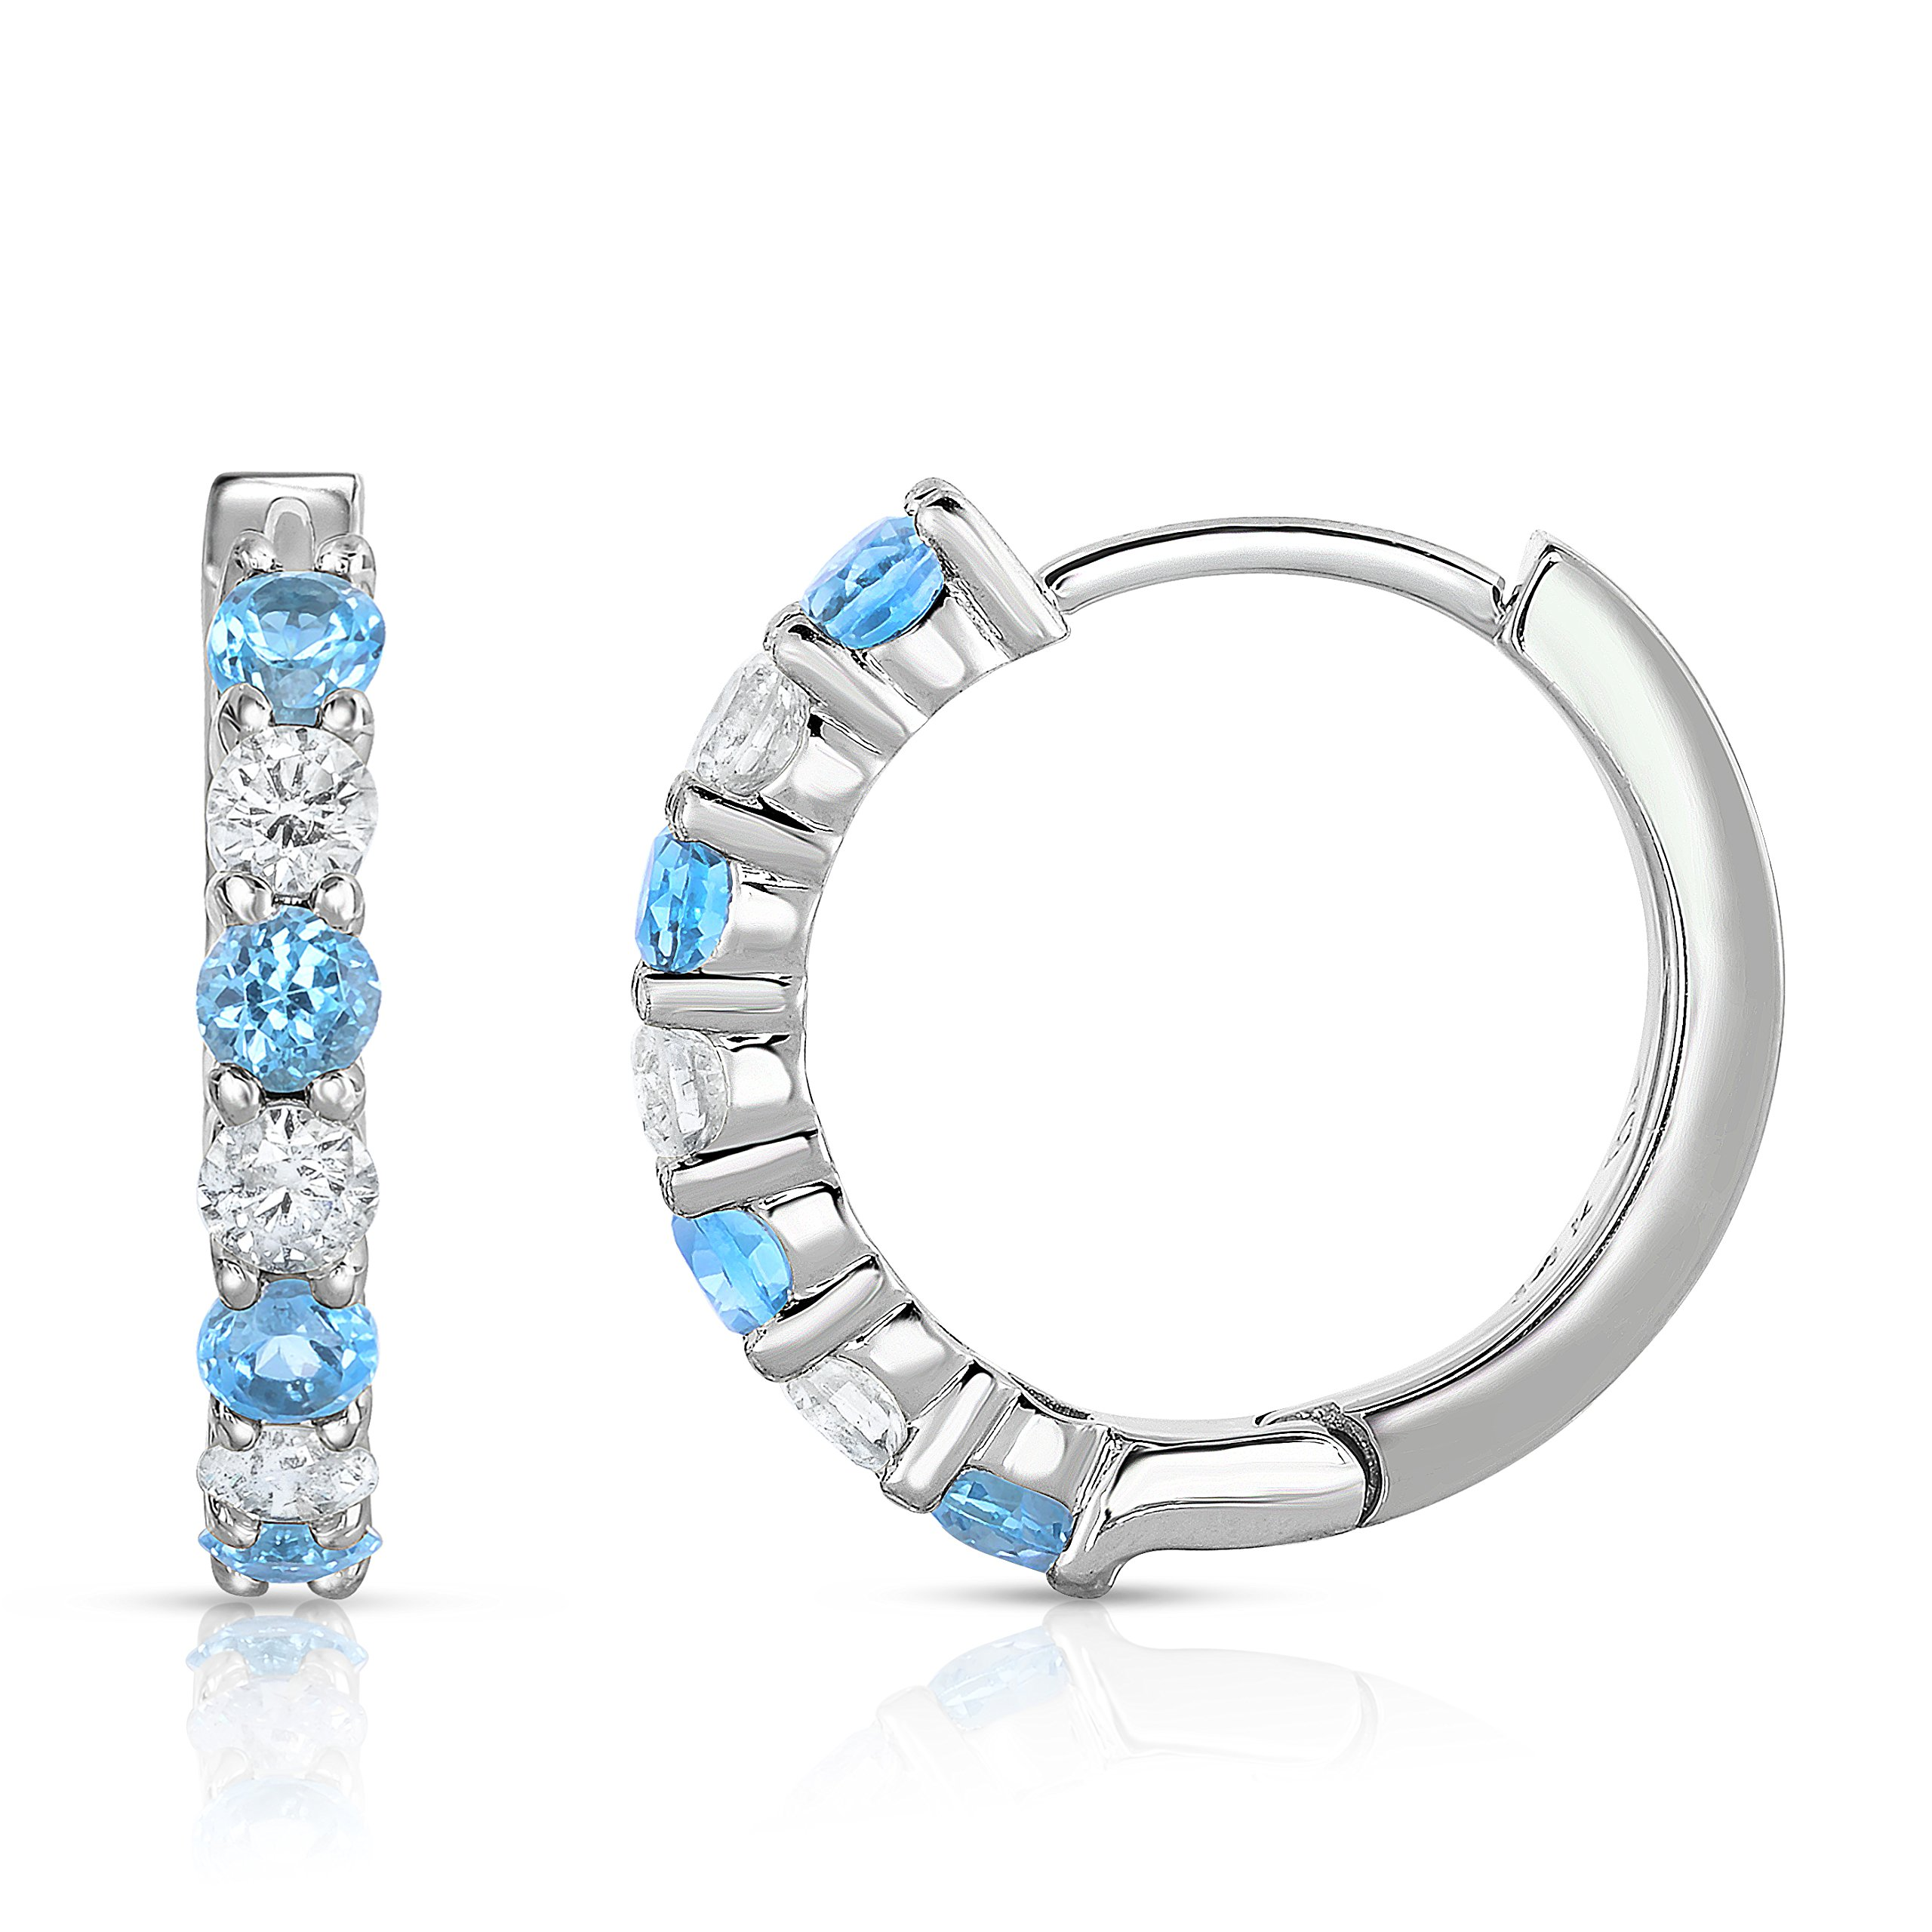 Noray Designs 14K White Gold Blue Topaz & Diamond (0.45 CT, G-H Color, SI2-I1 Clarity) Hoop Earrings